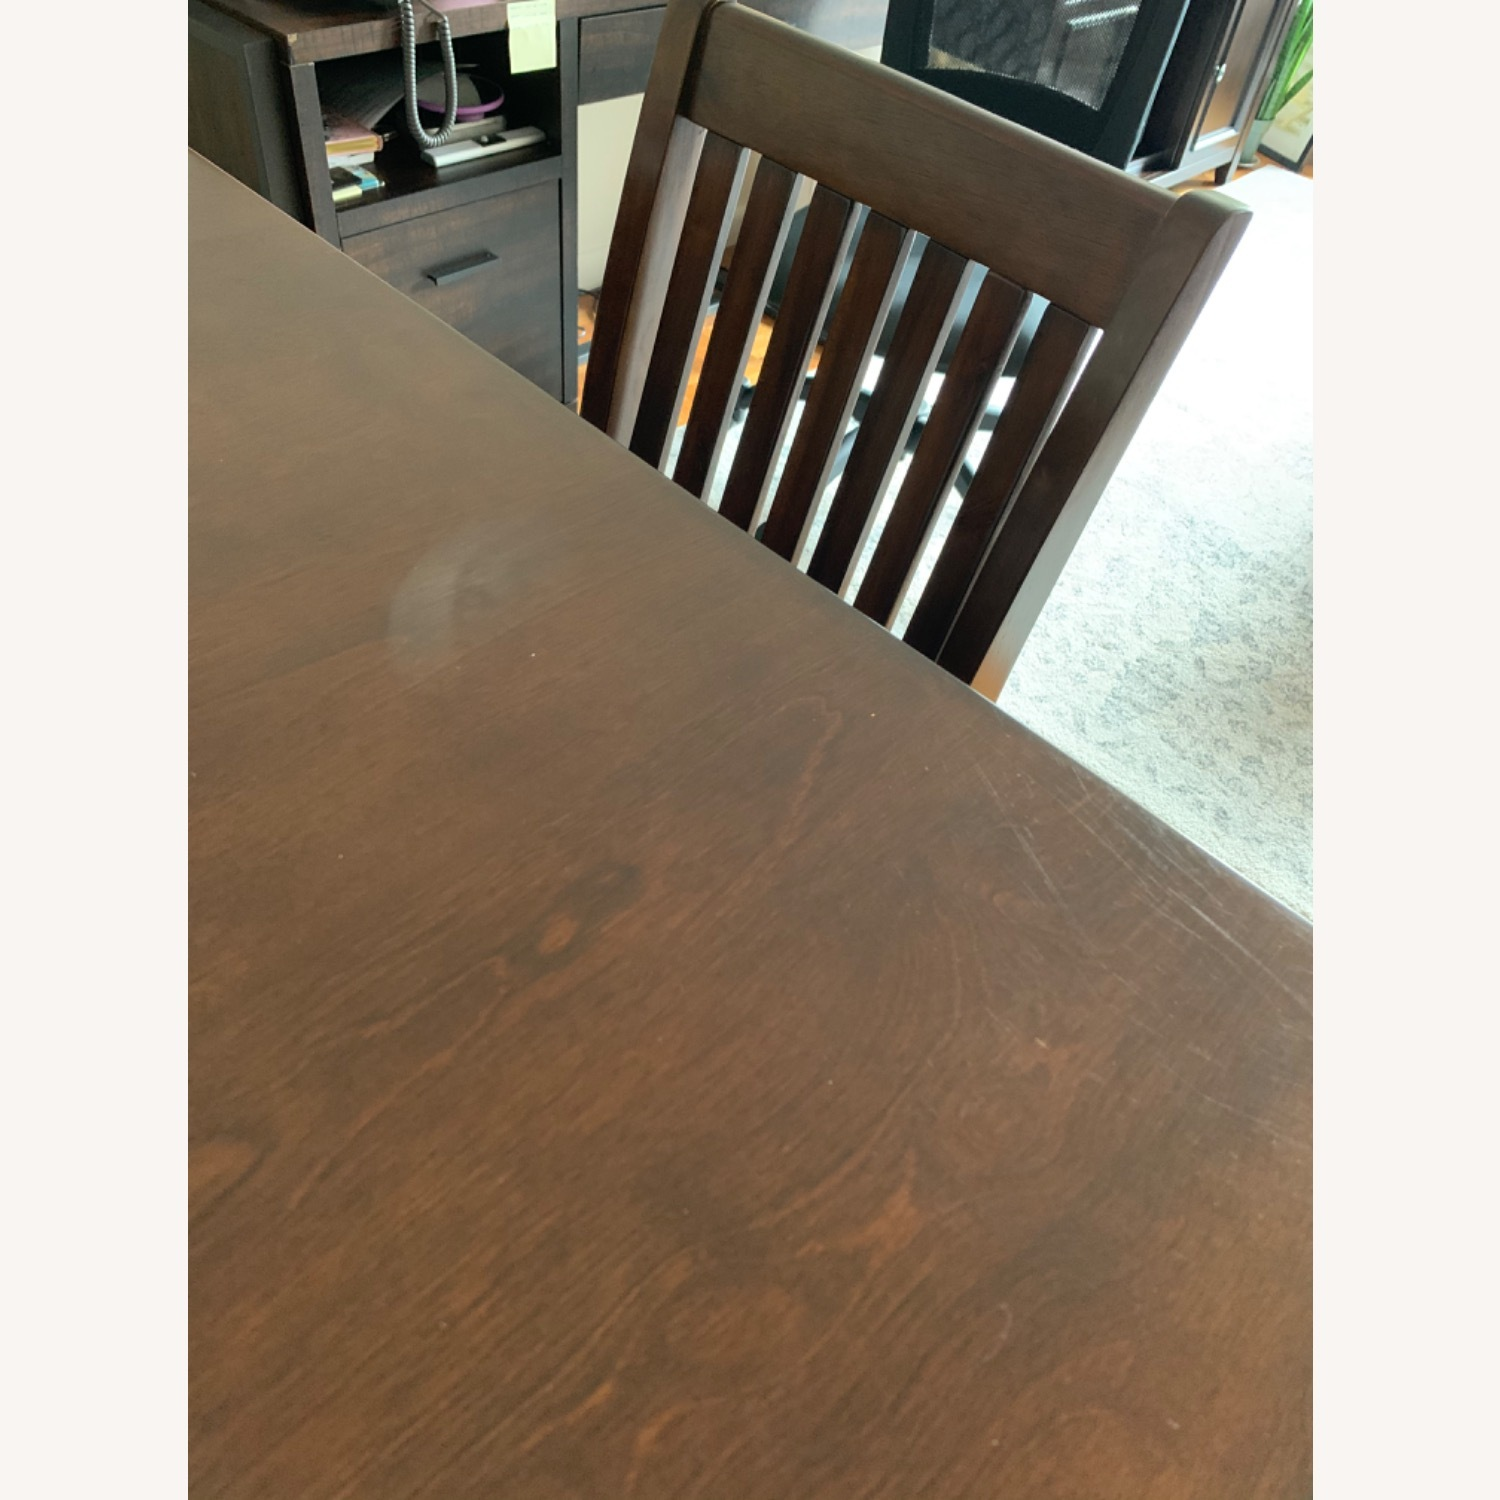 Wayfair 5 Piece Warm Cherry Dining Set - image-4